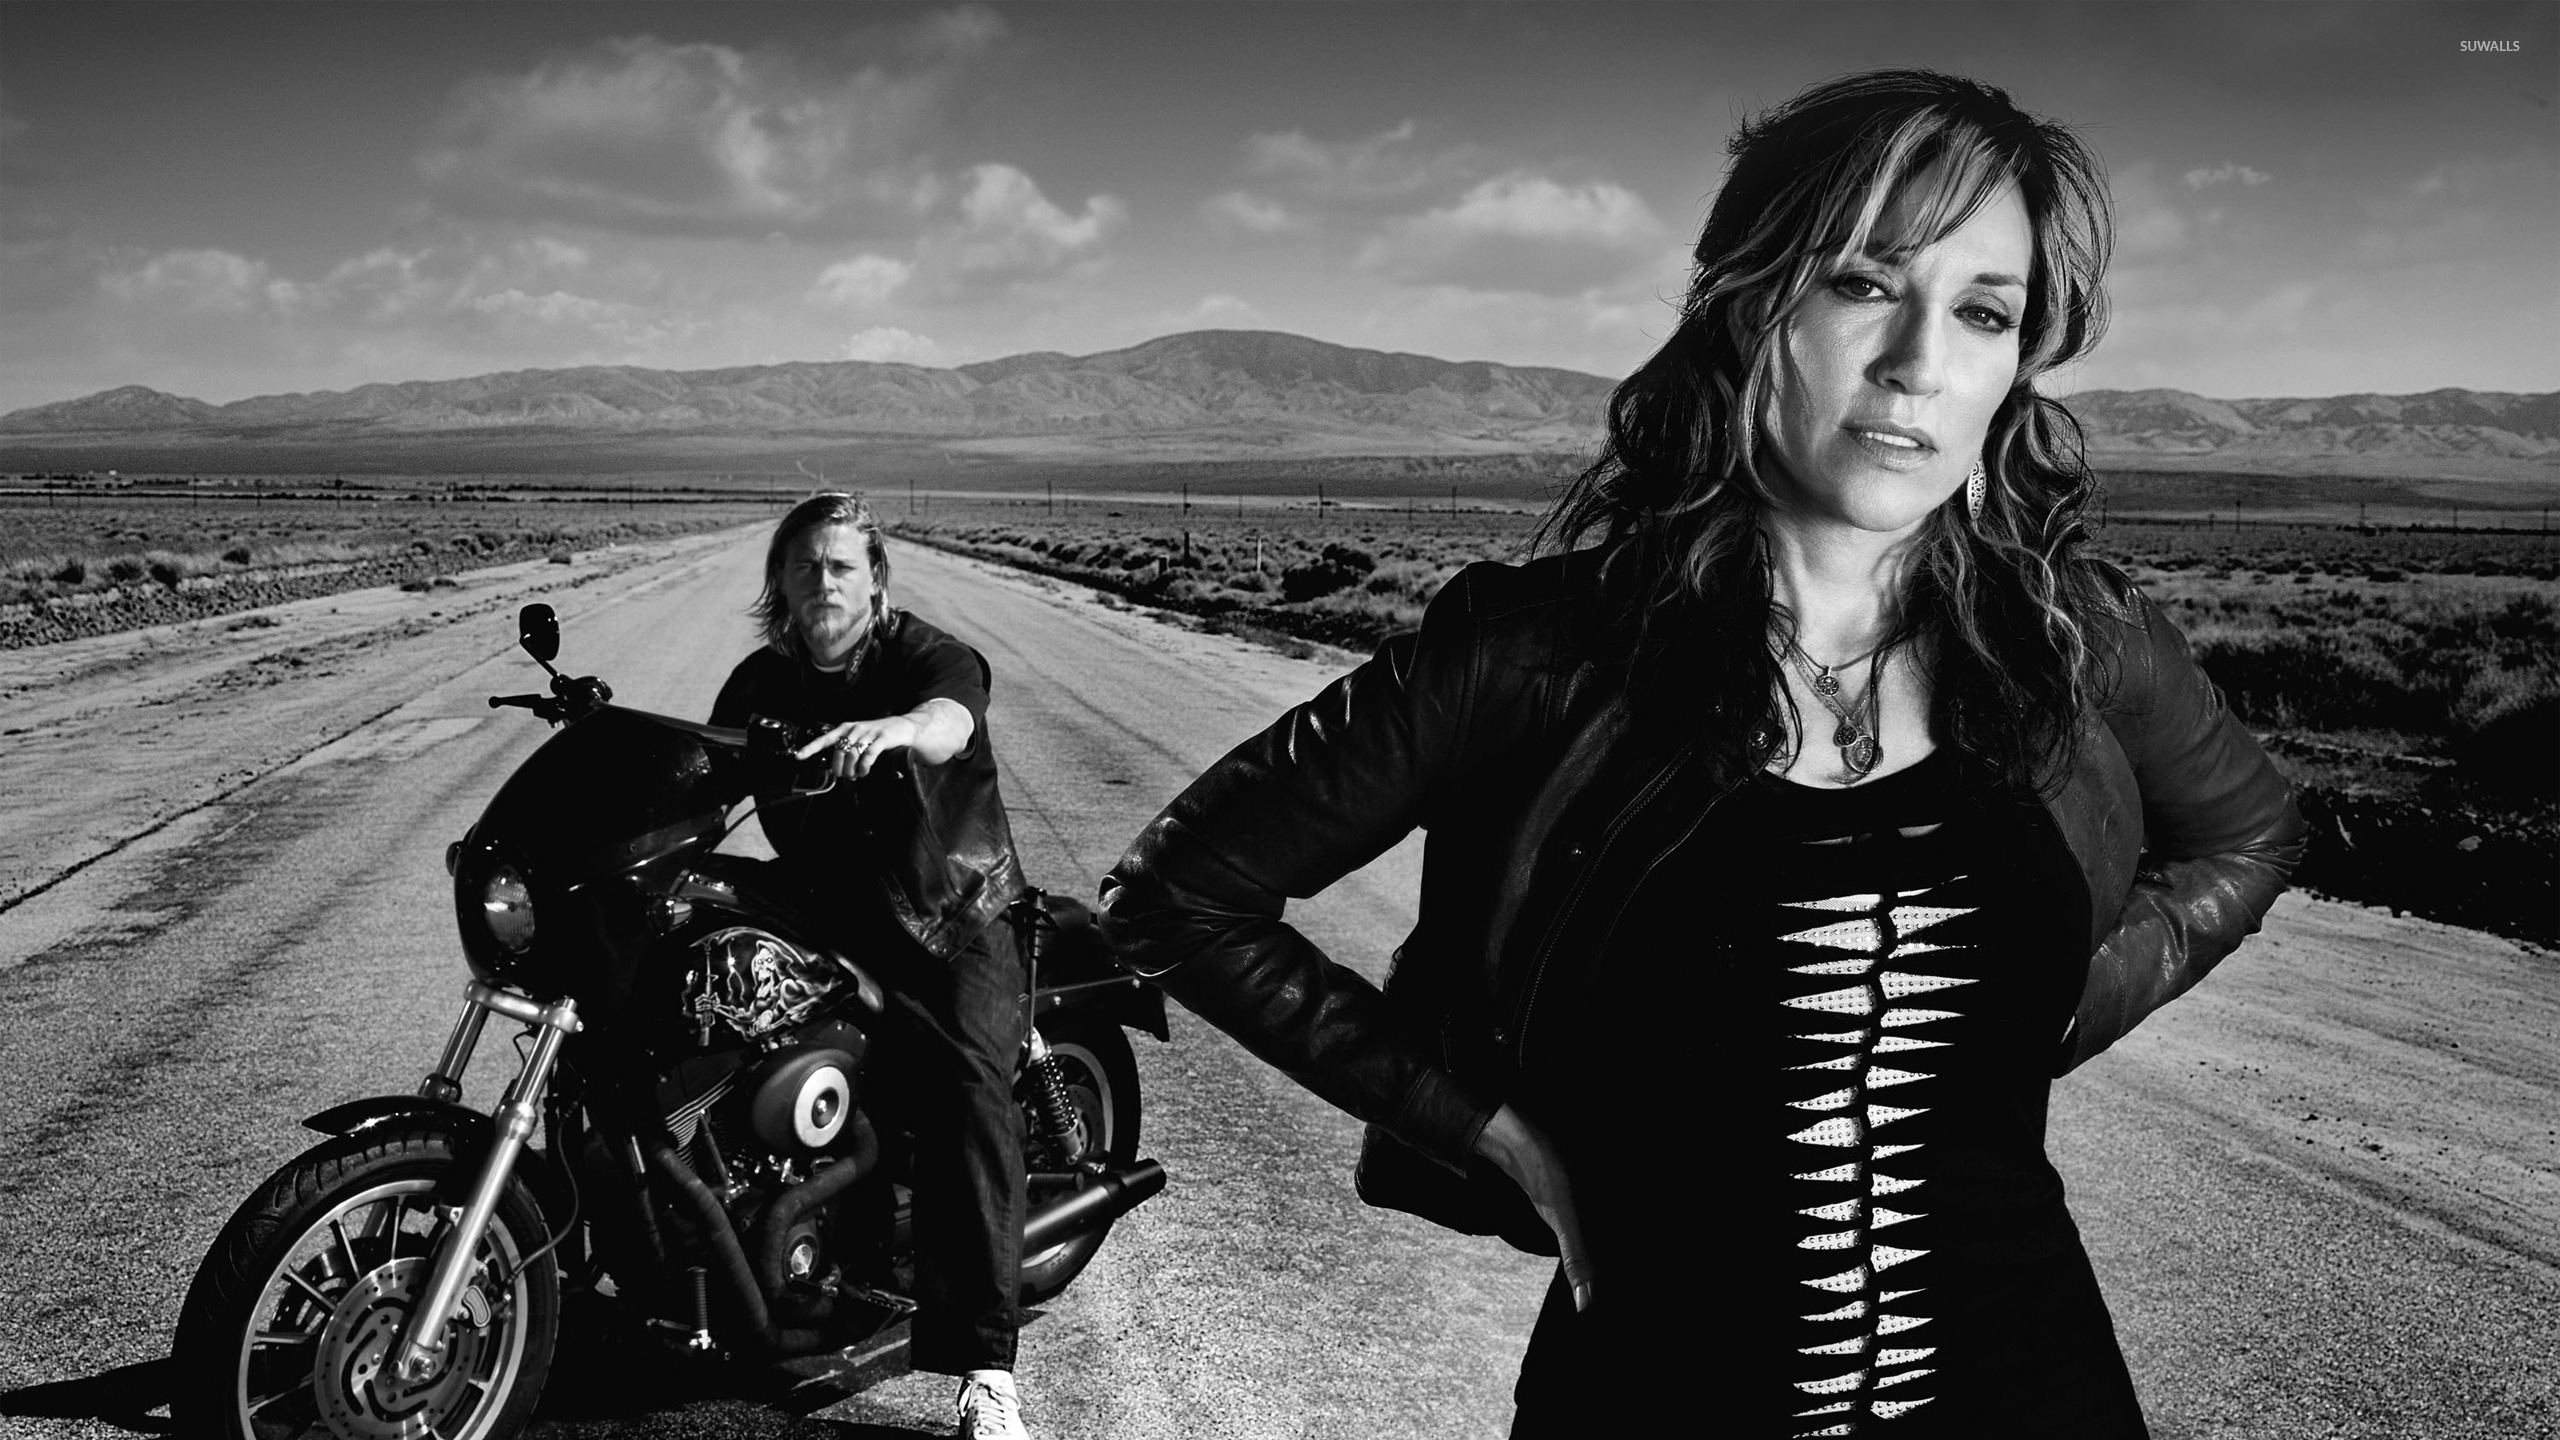 tig sons of anarchy